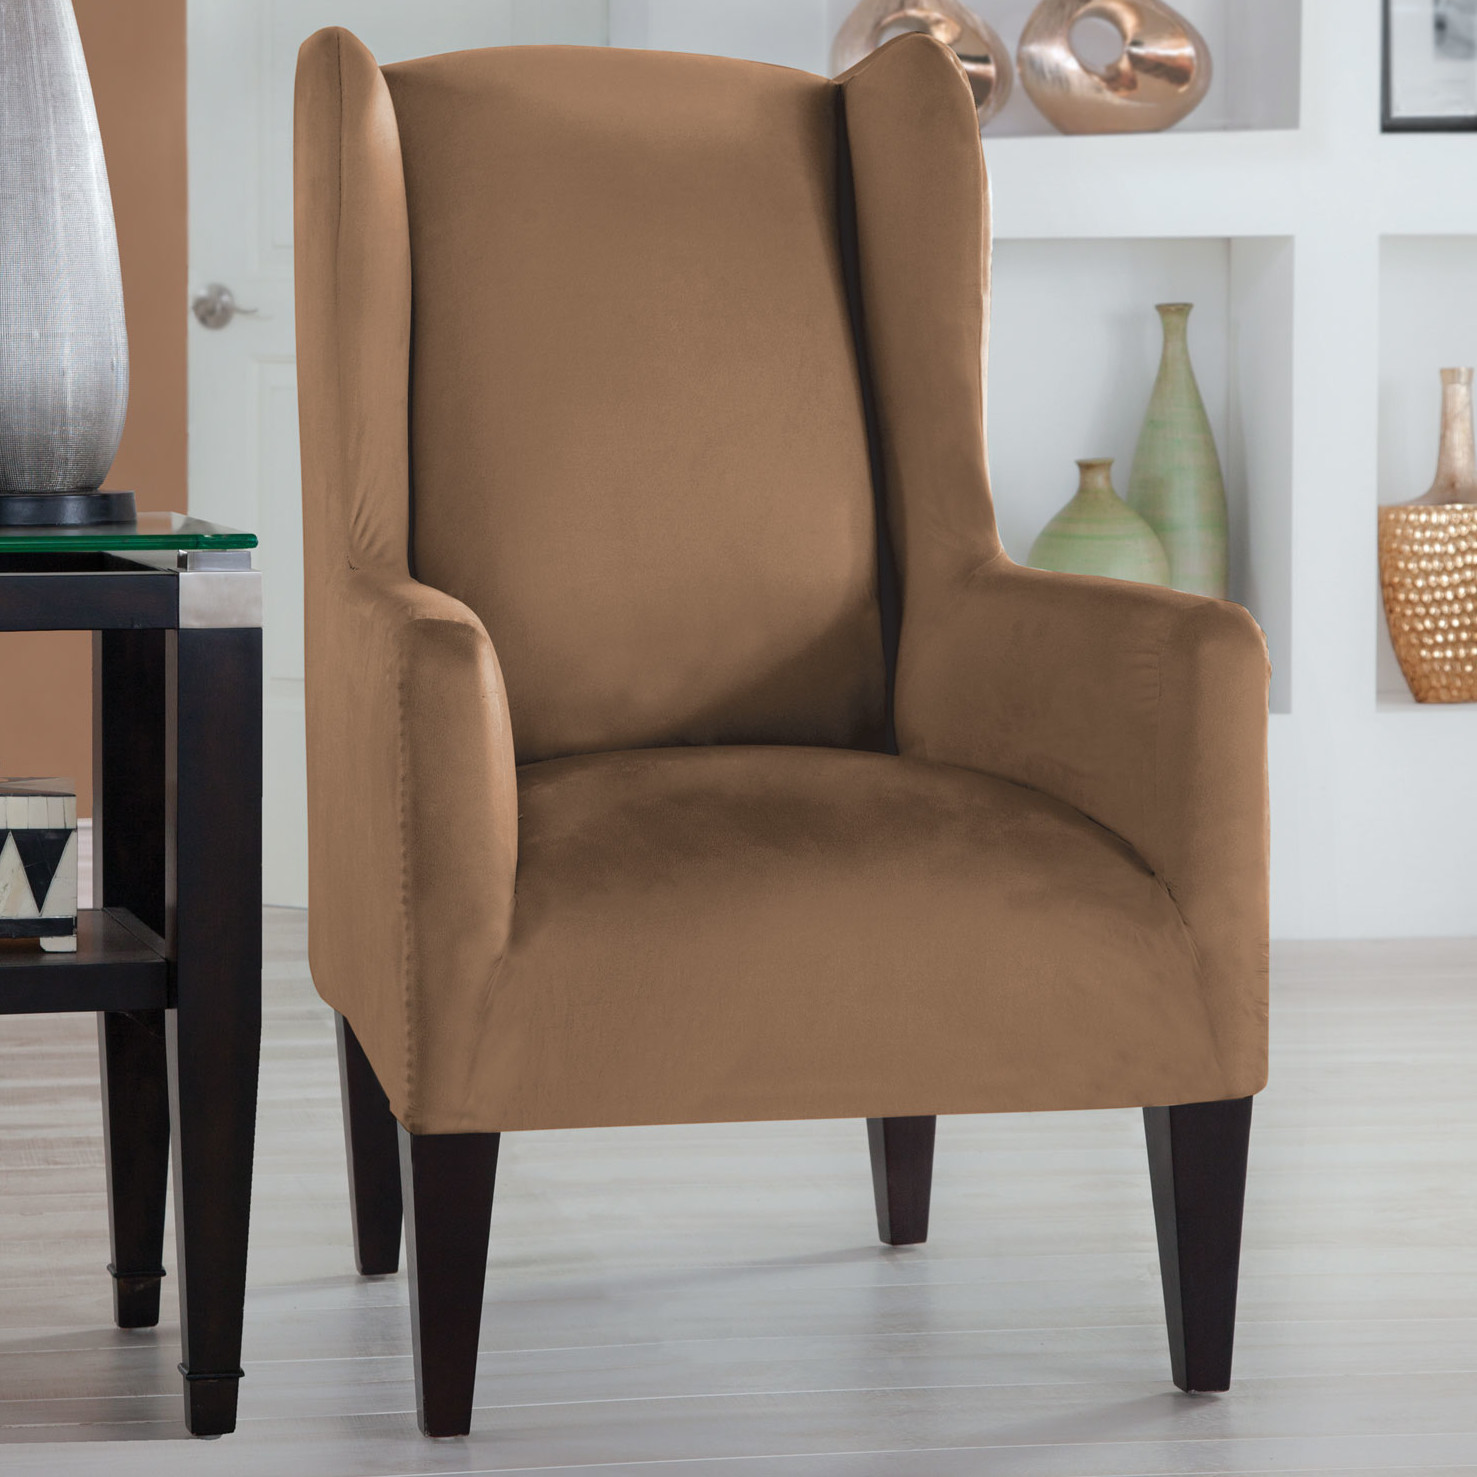 Luxe Sofa Slipcover | Furniture Slipcovers | Slipcovers For Sofas With Cushions Separate